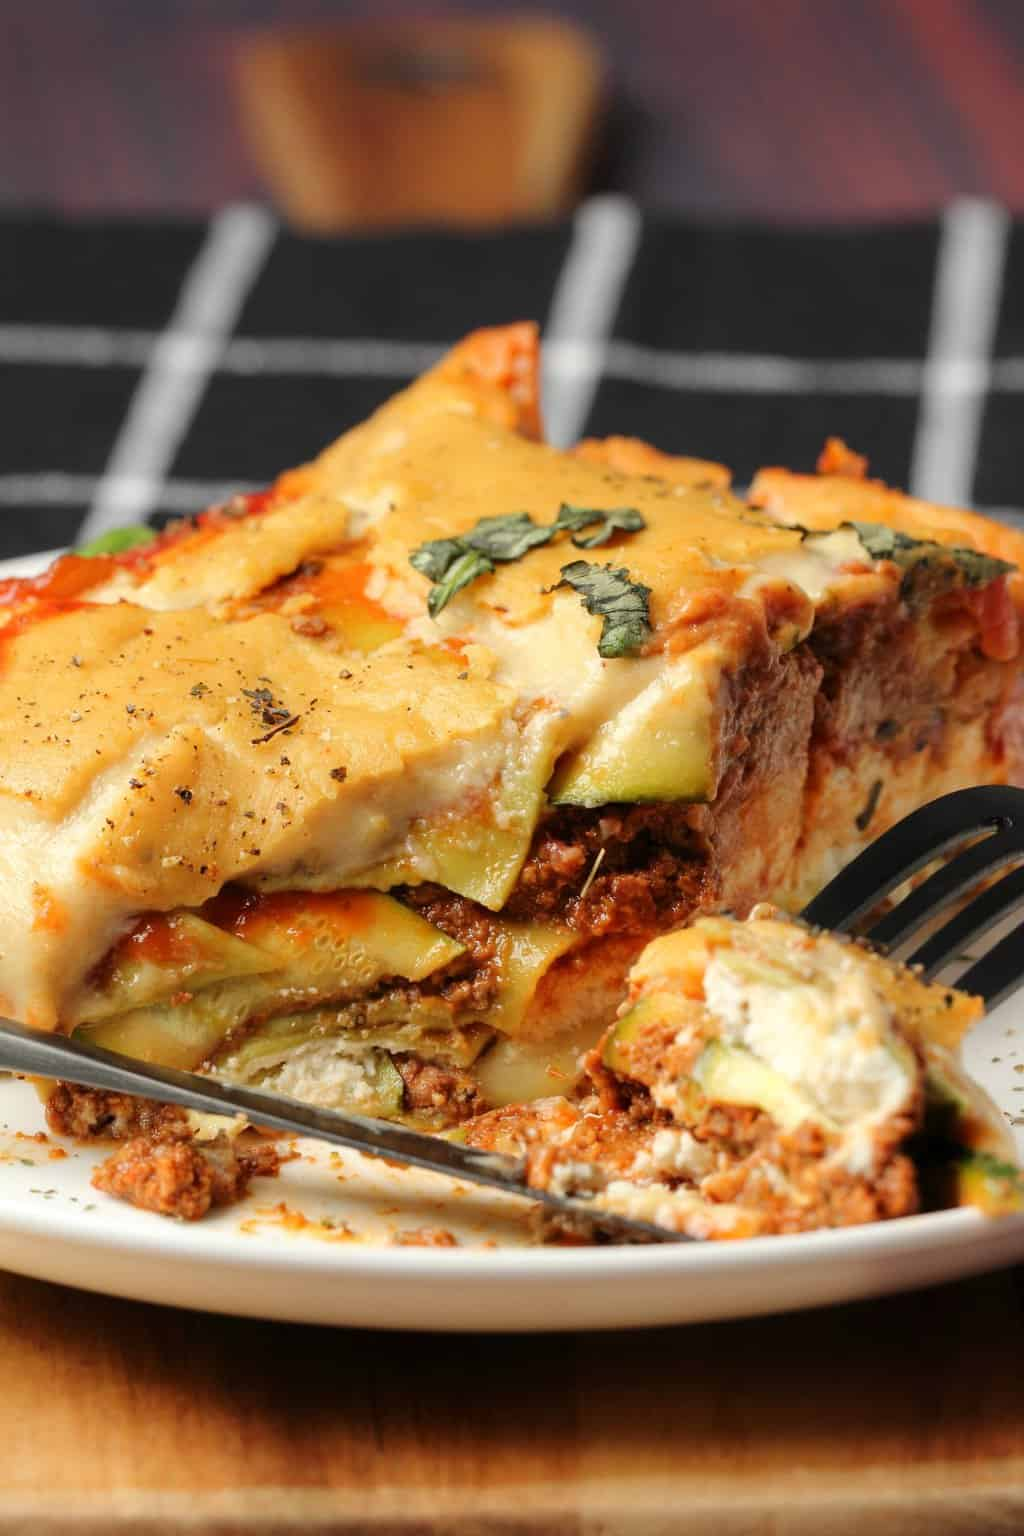 Slice of vegan lasagna on a white plate with a fork.